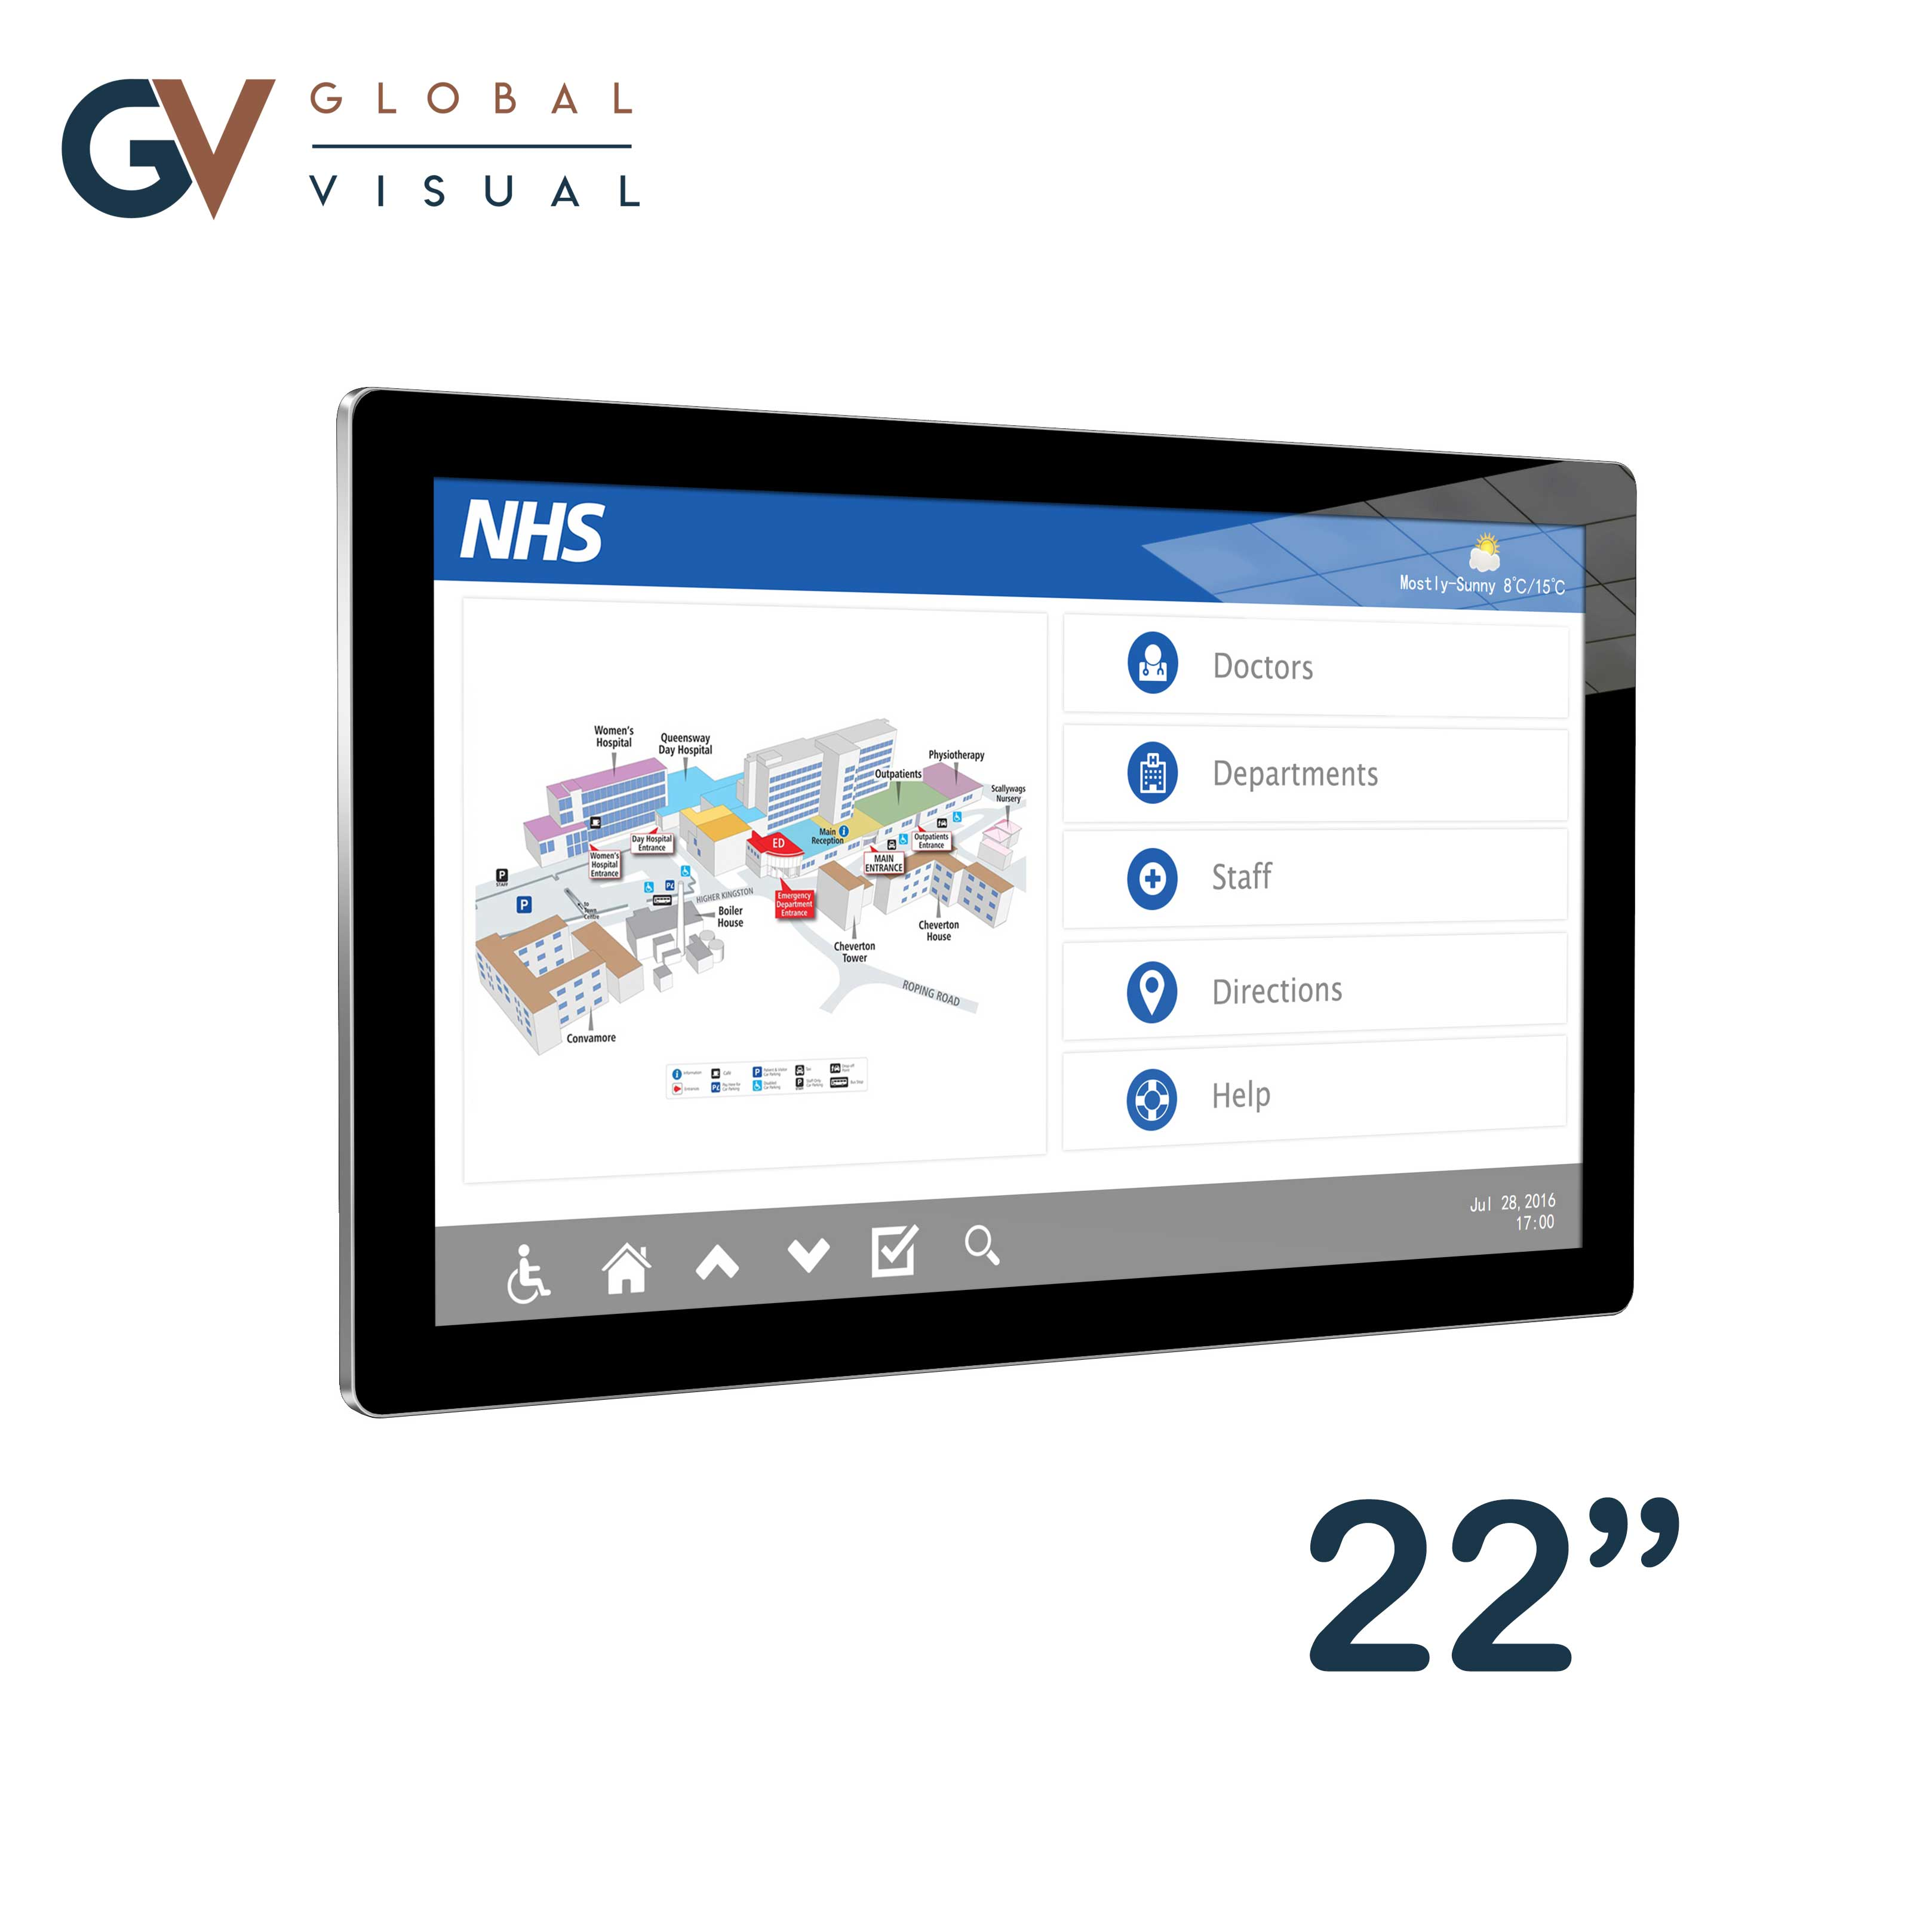 Image of a 22 Inch PCAP Touch Screen